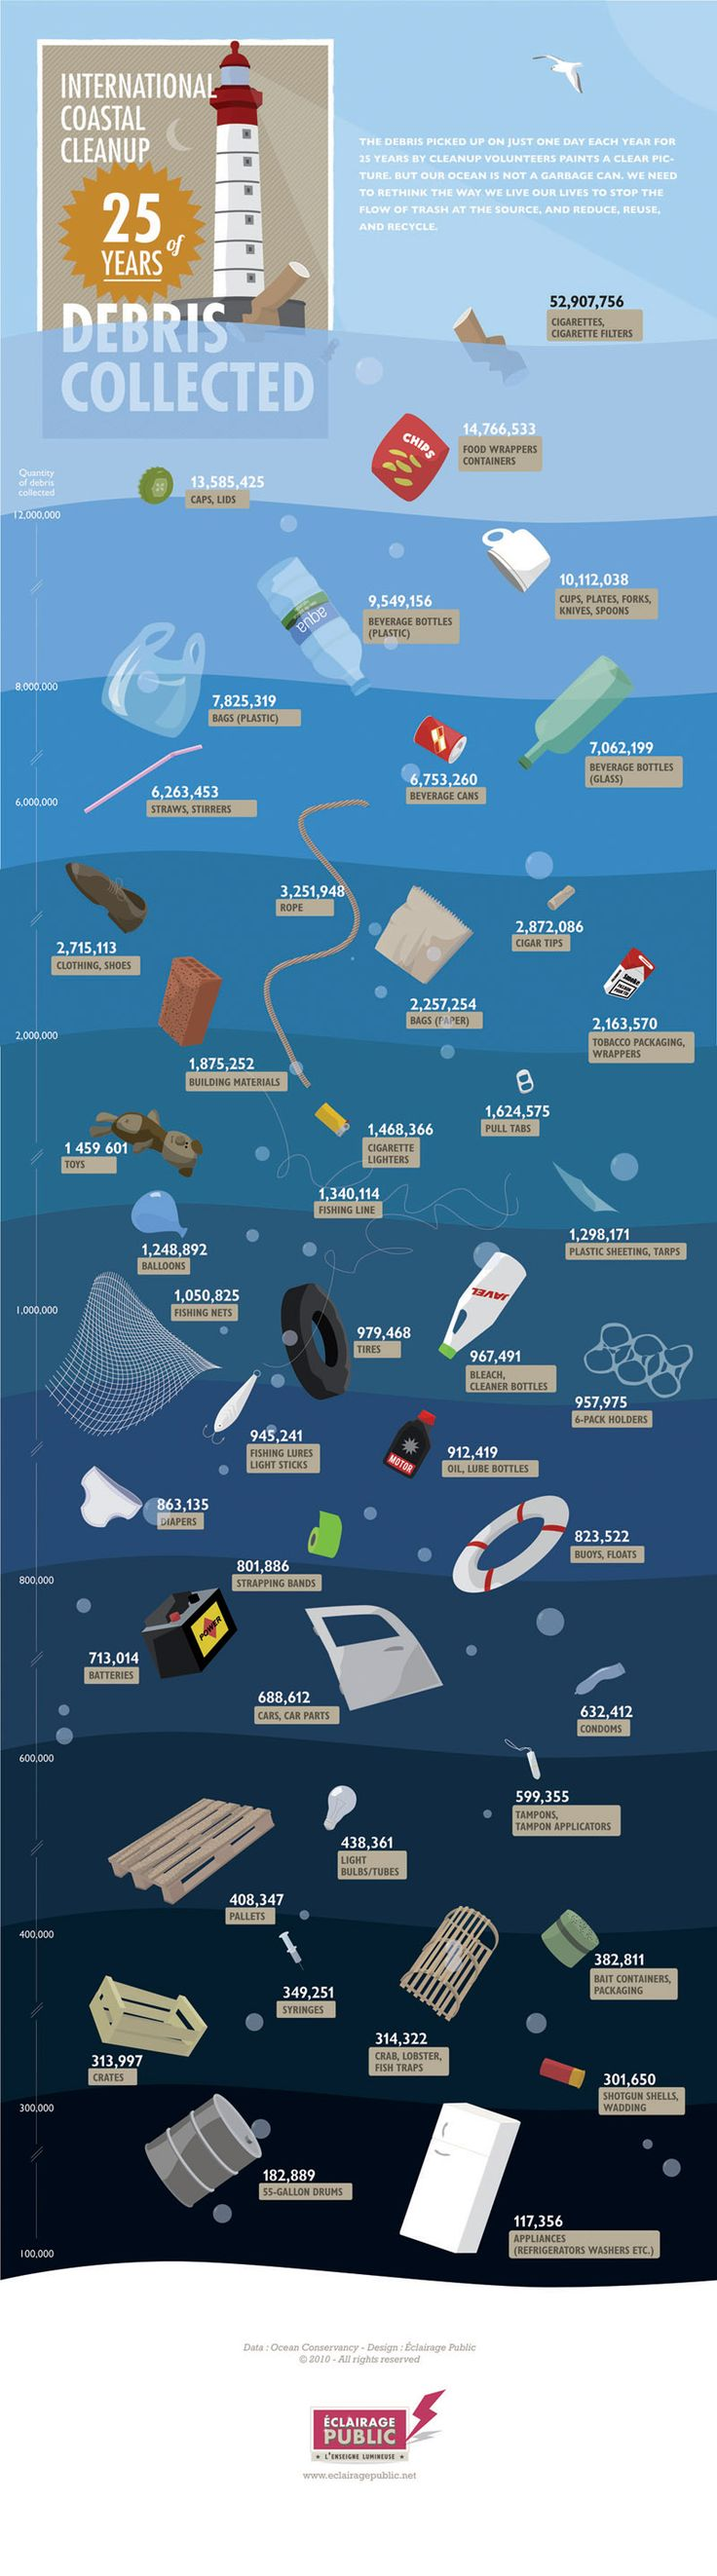 The Ocean is a Garbage Can ...  Verrier's eye-catching rendering depicts objects bobbing in an ocean. The graphic correlates depth to the number collected since the first Coastal Cleanup day in 1986. In an instant, it's easy to see how difficult it is for marine life to survive in that much detritus.